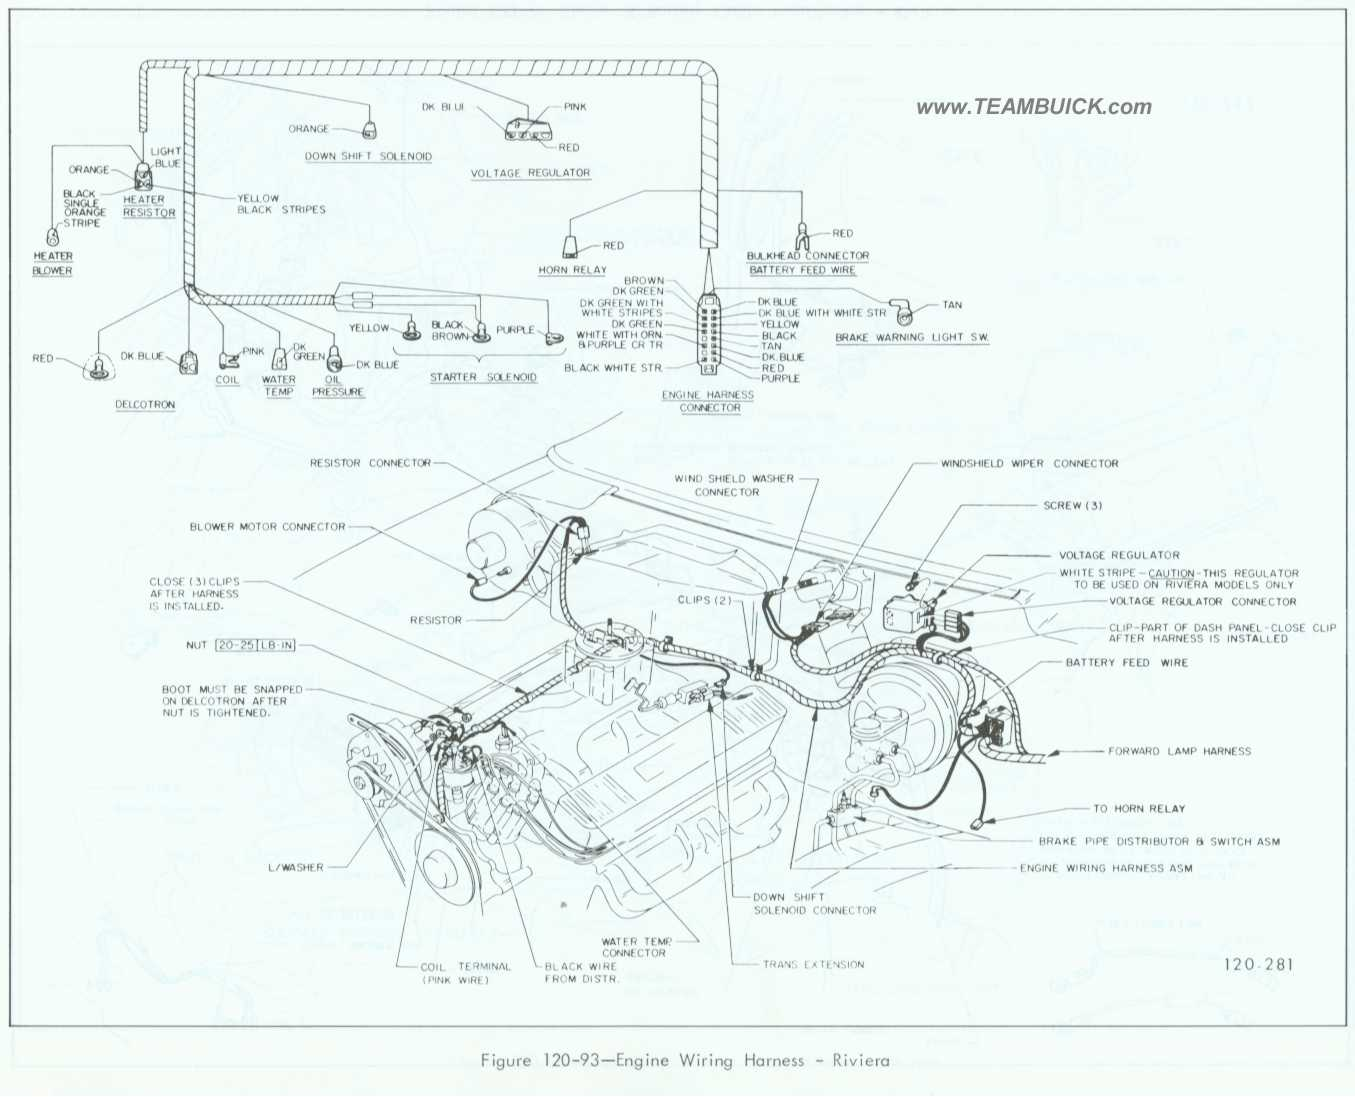 American Autowire Diagrams Wiring Harnes For 1964 Buick Riviera Wiring Diagram Database